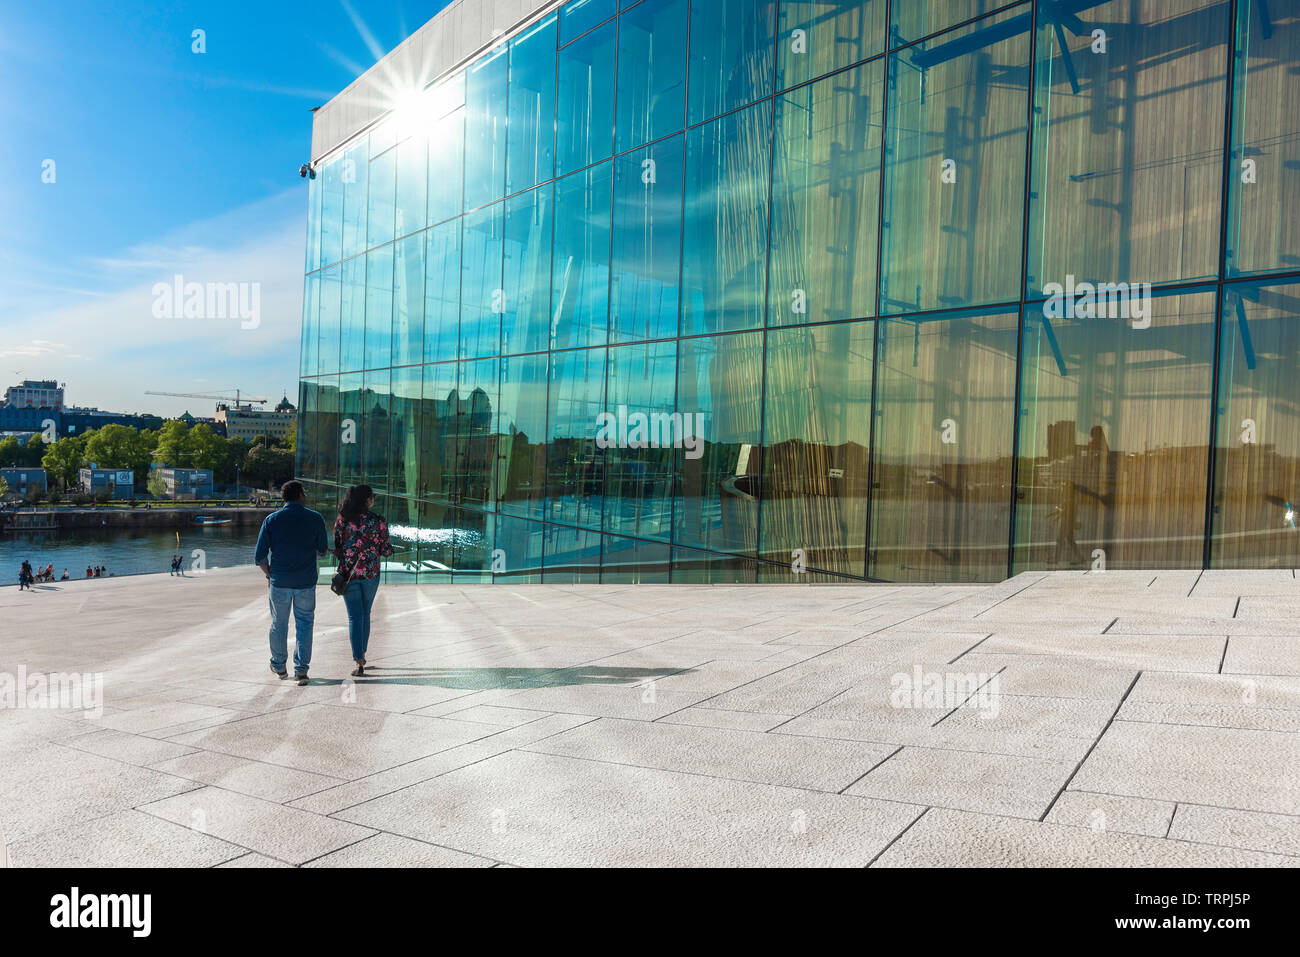 Oslo summer, rear view in summer of a tourist couple descending the vast access ramp leading to the roof of the Oslo Opera House, Norway. Stock Photo